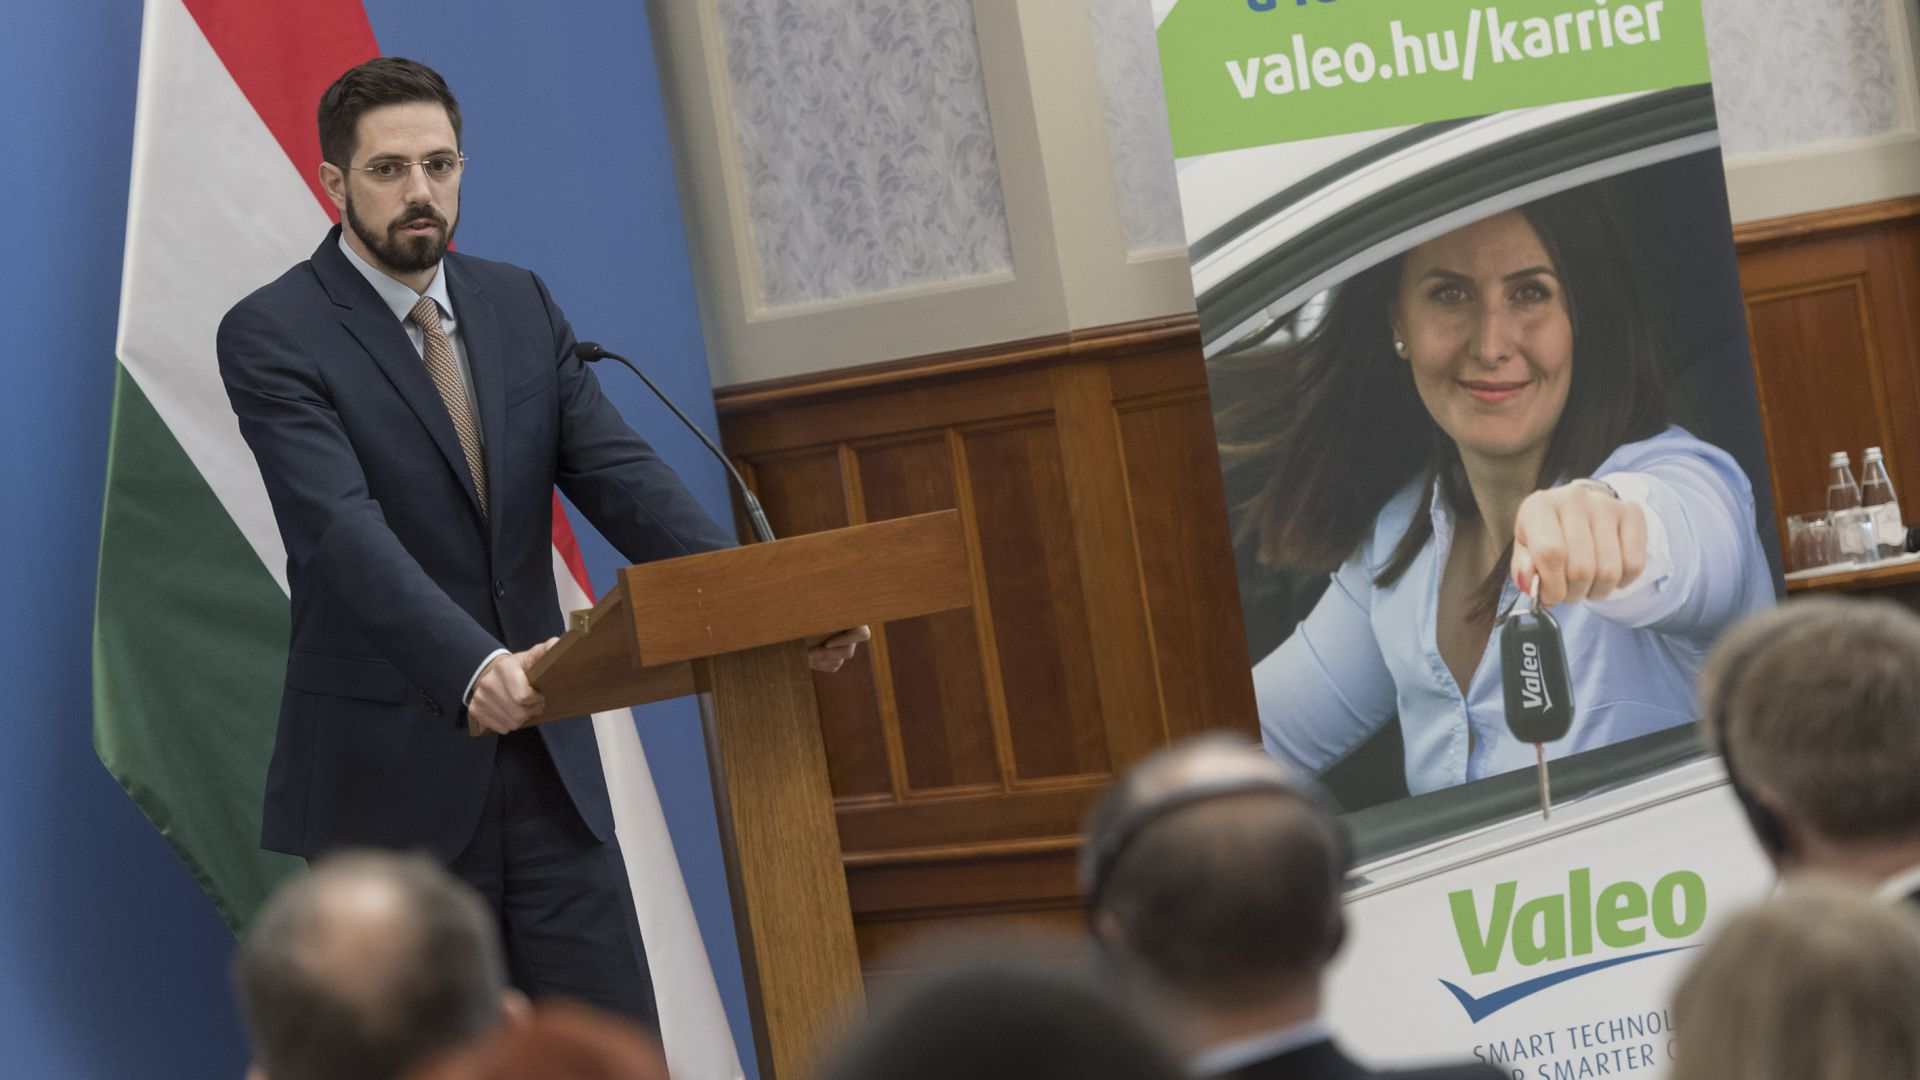 Another important development starts at Valeo's Veszprém plant